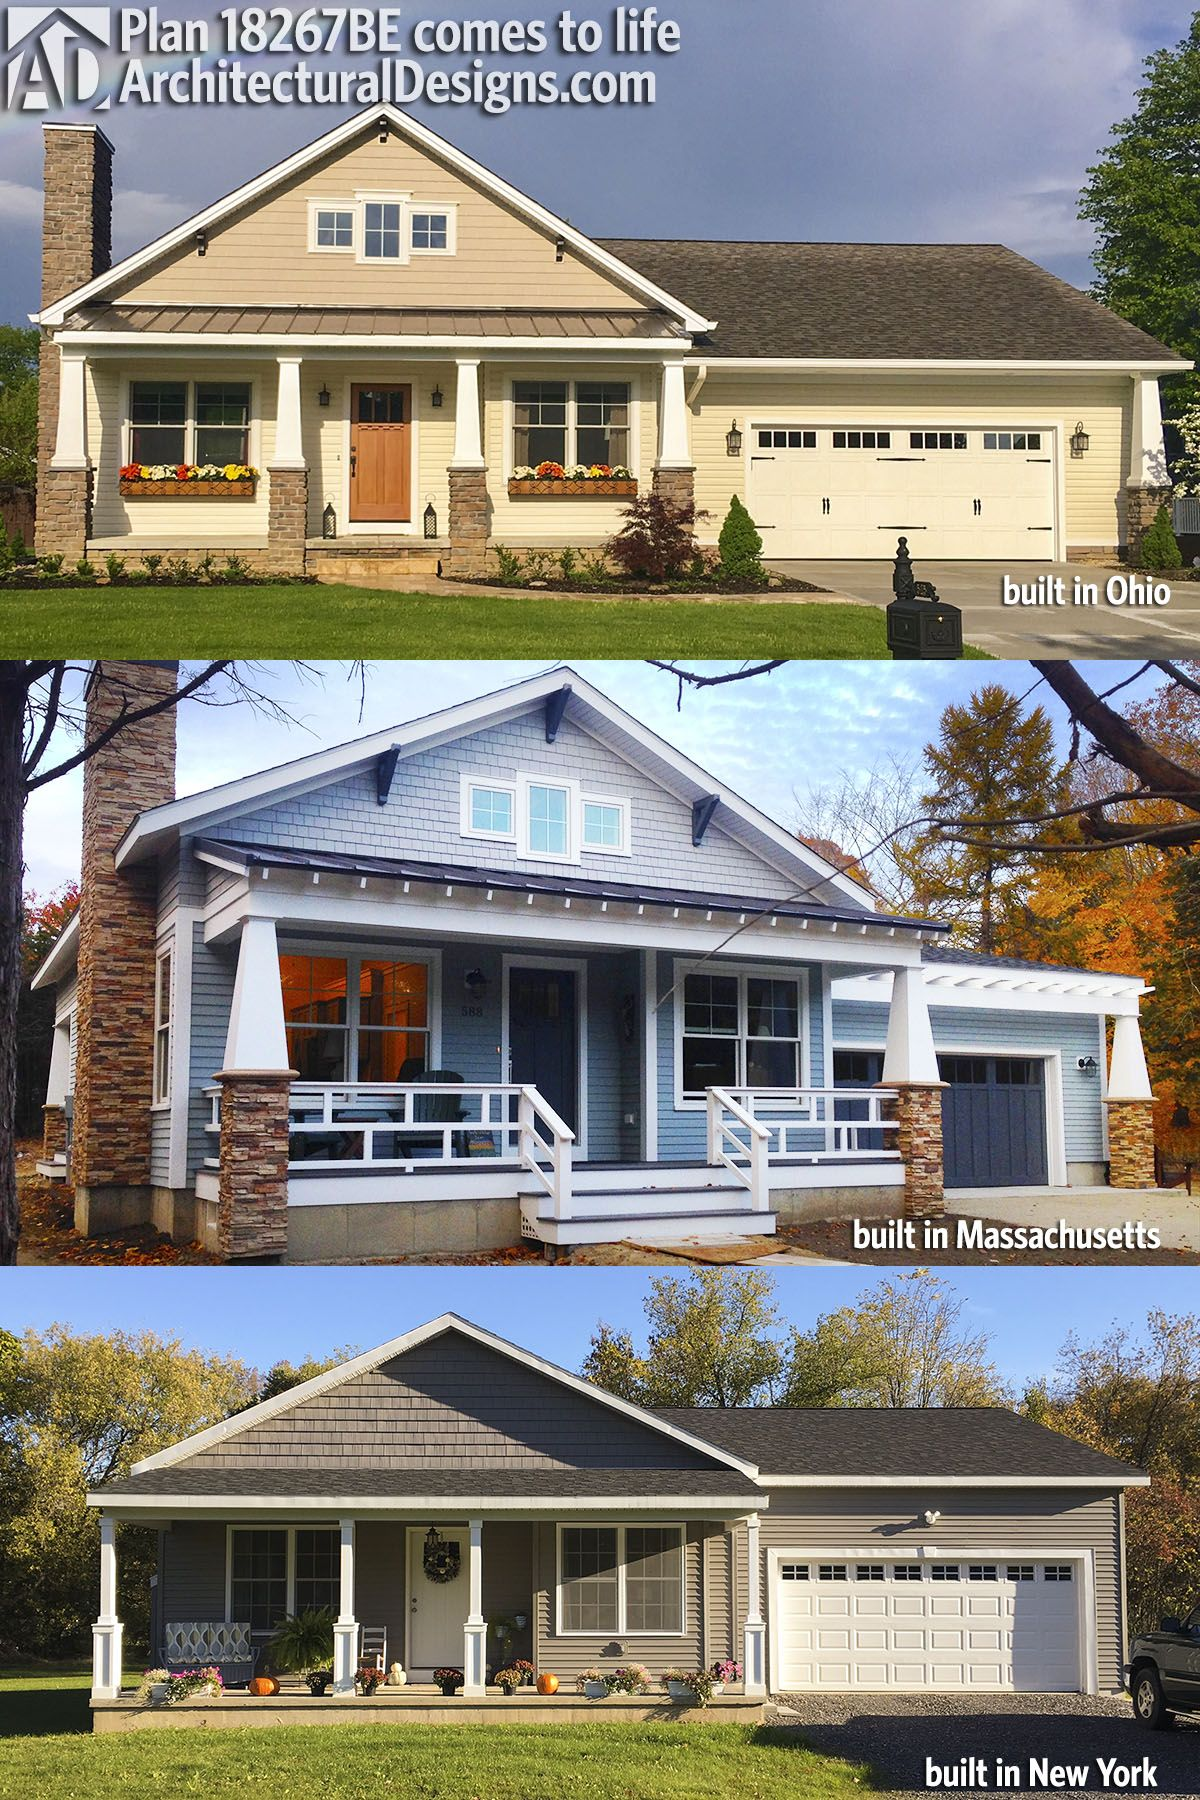 Plan 18267be Simply Simple One Story Bungalow Bungalow House Plans Small Basement Remodel Basement Remodeling